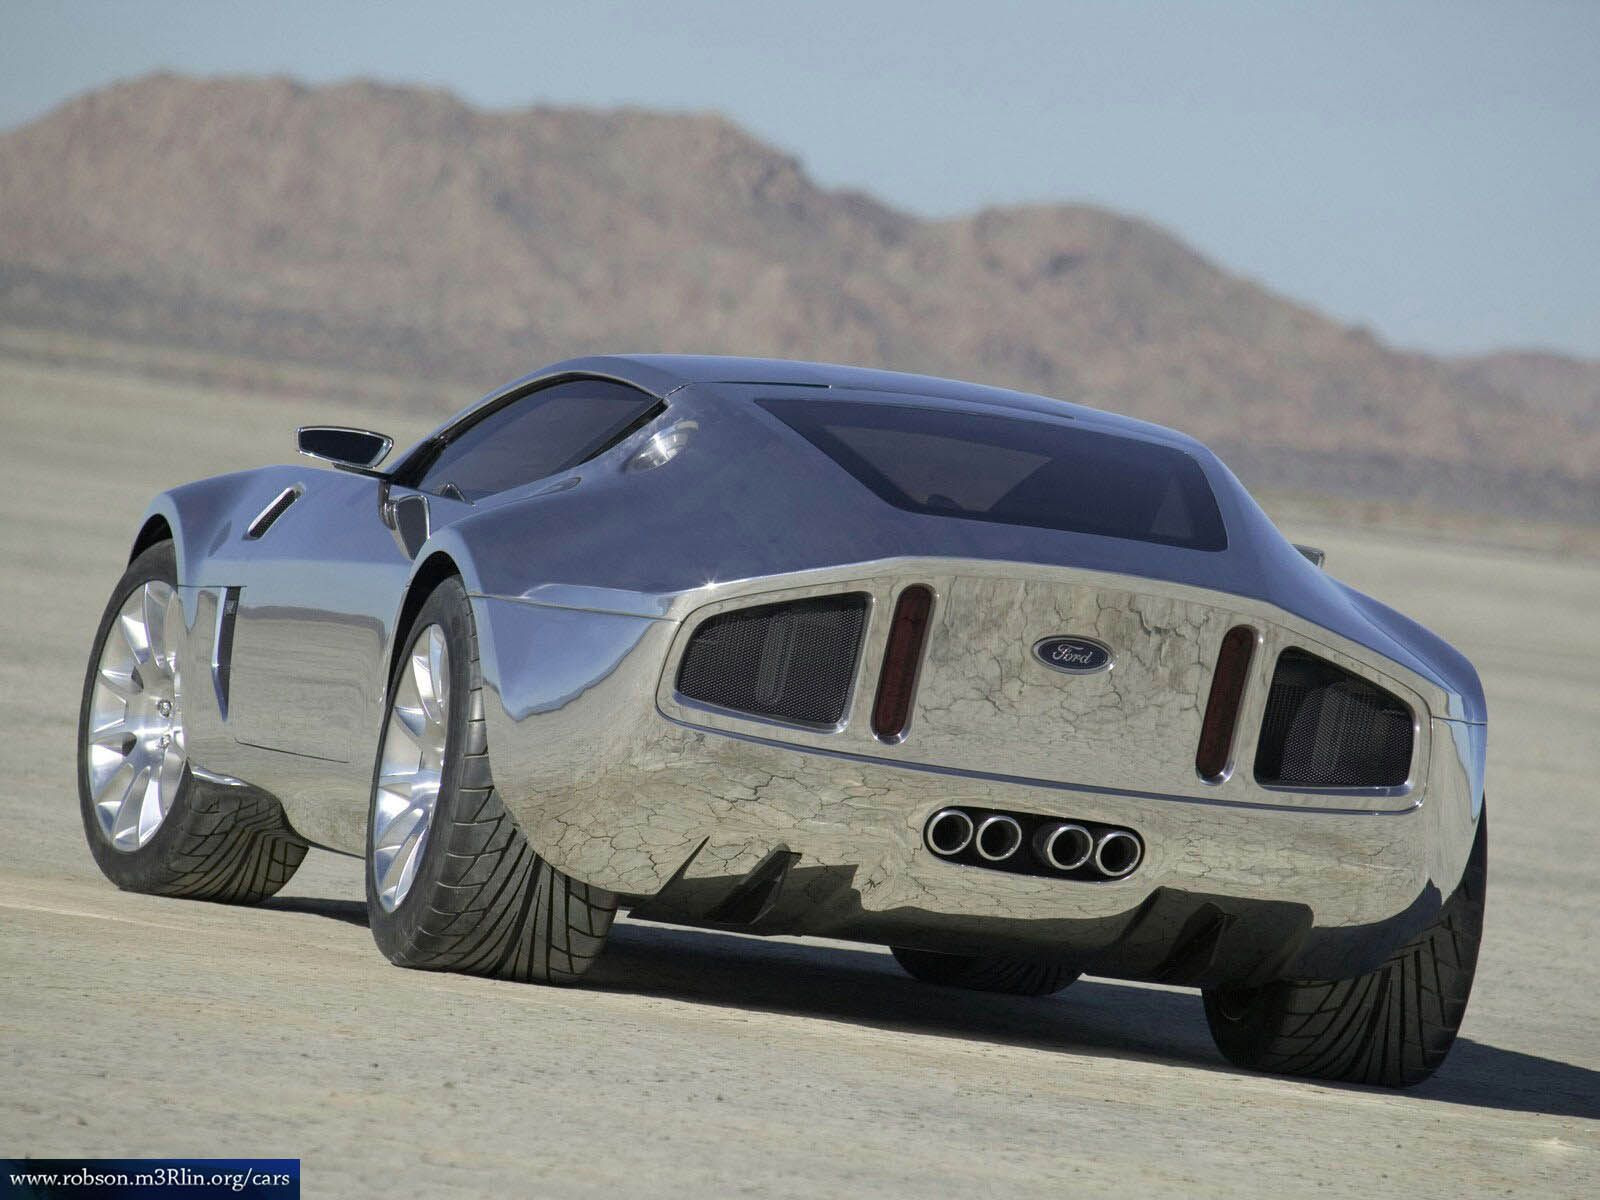 Shelby Cars The Ford Shelby GR Is A Uniquely Emotional - New performance cars